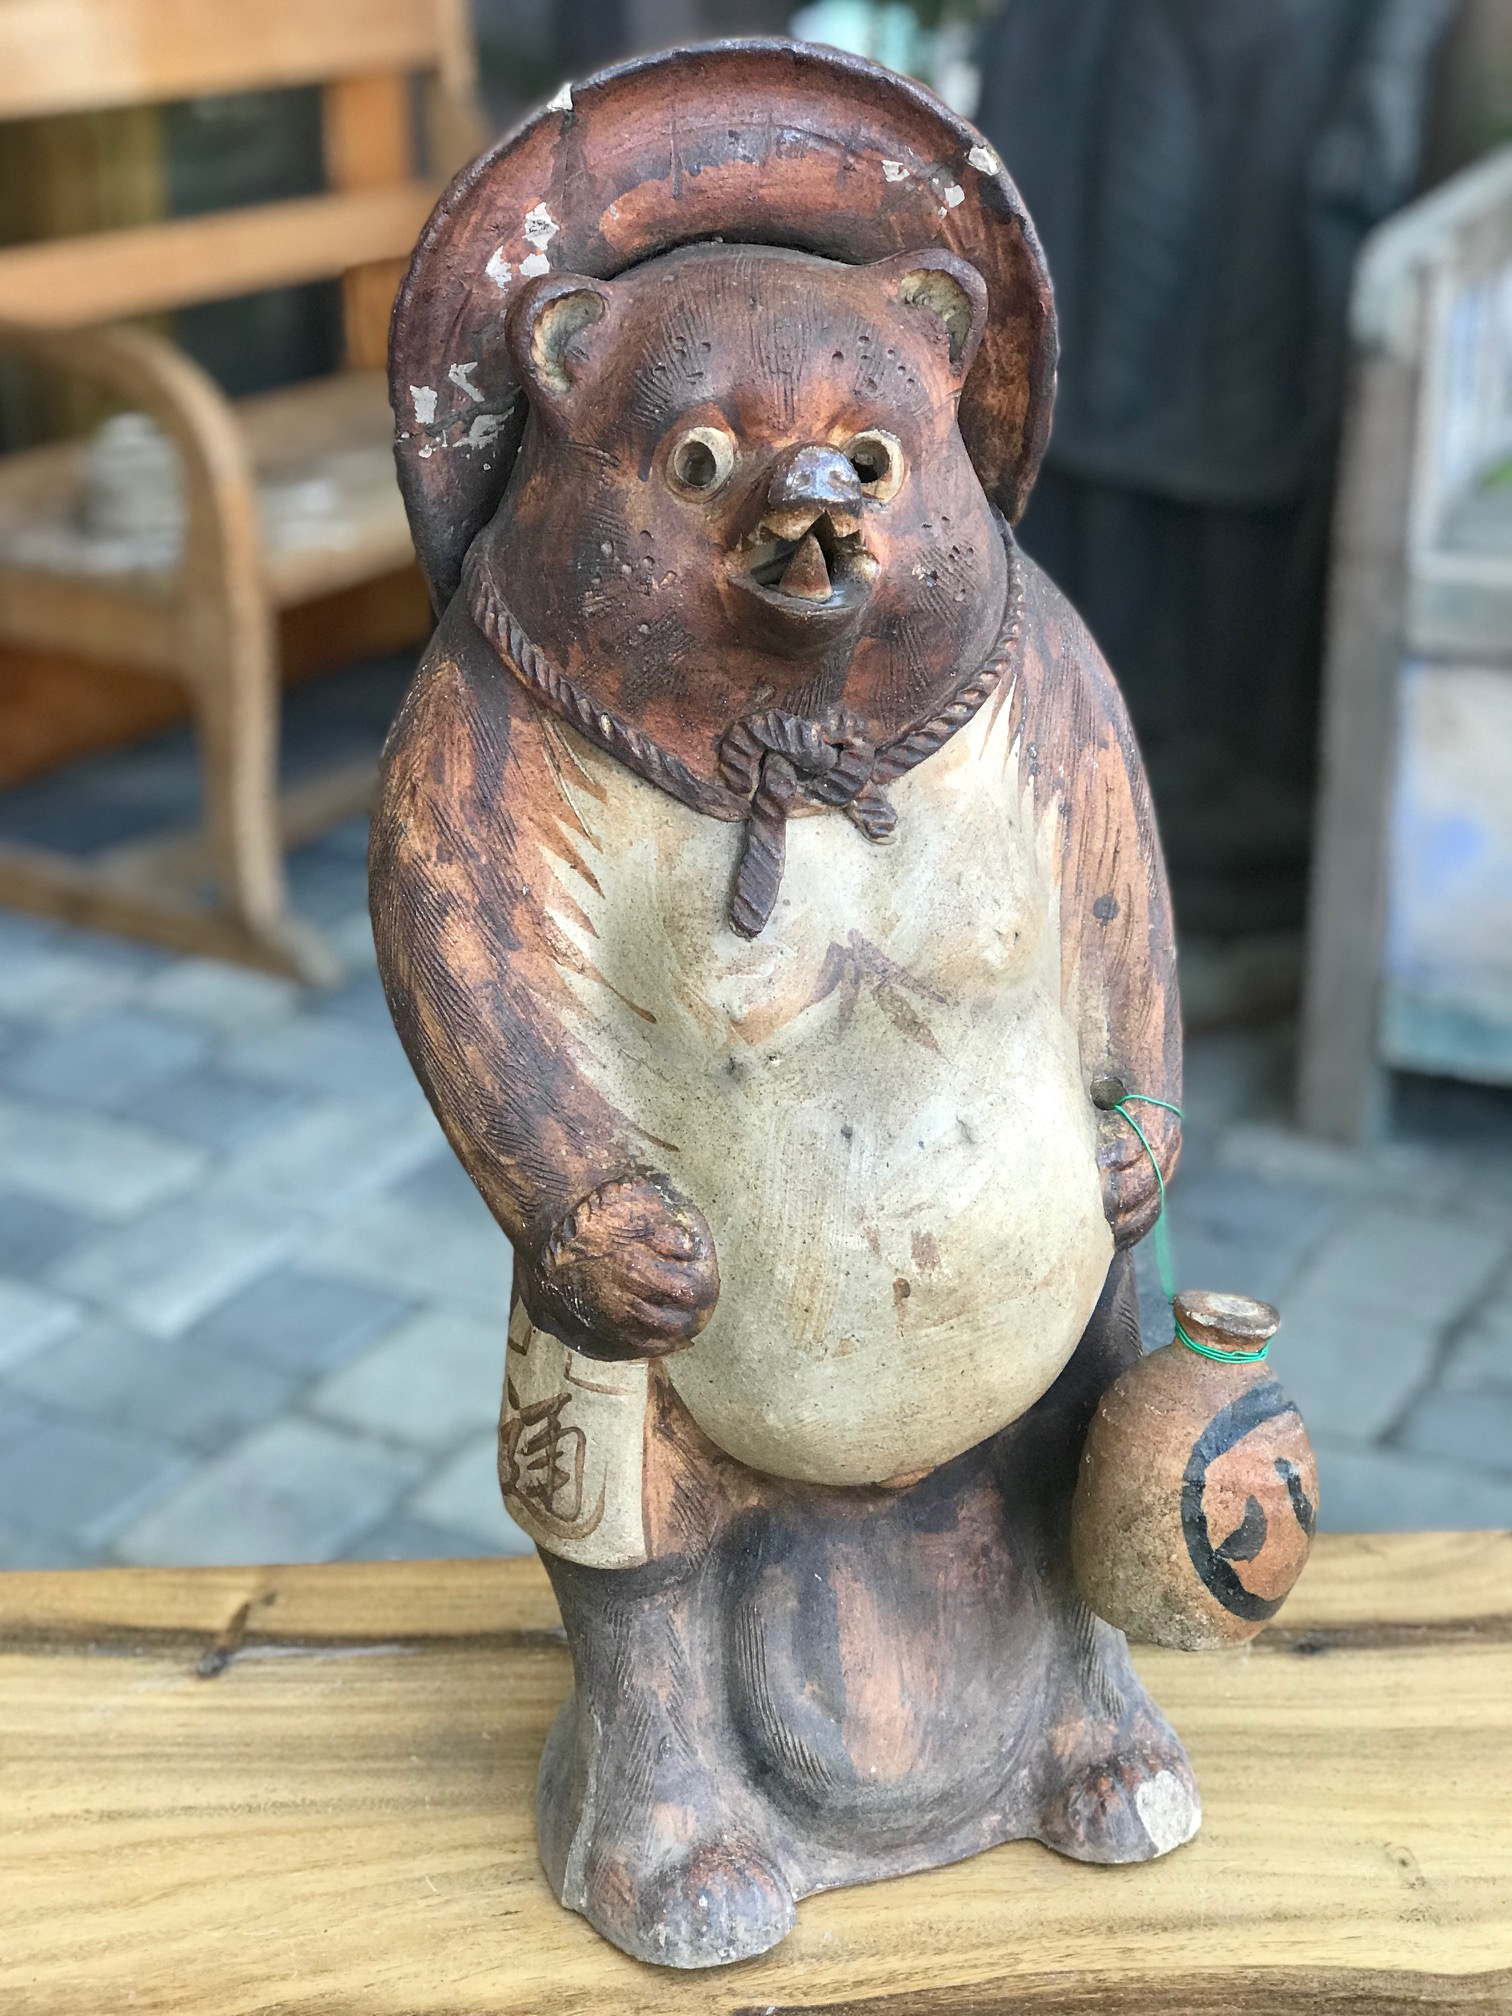 """Shigaraki Tanuki, (unglazed) Tanuki have a very complex and interesting folkloric history. While largely unheard of in the states, Tanuki have been among the most significant characters in Japan since ancient times. Contemporary Tanuki are primarily a welcoming symbol of prosperity. In the mid 20th century the character was adapted, both visually and symbolically, to suit modern culture and, although they retain much of their prankster persona from the original 16th century creatures, they are much more benign. They have a long list of supernatural powers, most notable shape-shifting. Ancient Tanuki, humorously portrayed in block prints are now mostly found in museums and private collections. Tanuki statues are often found in restaurant or shop windows and outside temples. Famous for getting drunk and not paying their bills, they are usually portrayed wearing a straw hat and carrying a flask of sake and a ledger of promissory notes. Thus they can also serve as cautionary figures against the hazards of overindulging in alcohol. They always have big bellies and humorously large testicles which they use as drums. 23 1/2"""" x 11 1/2"""" x 11"""", $675., thedavidalancollection.com , solana beach, ca"""